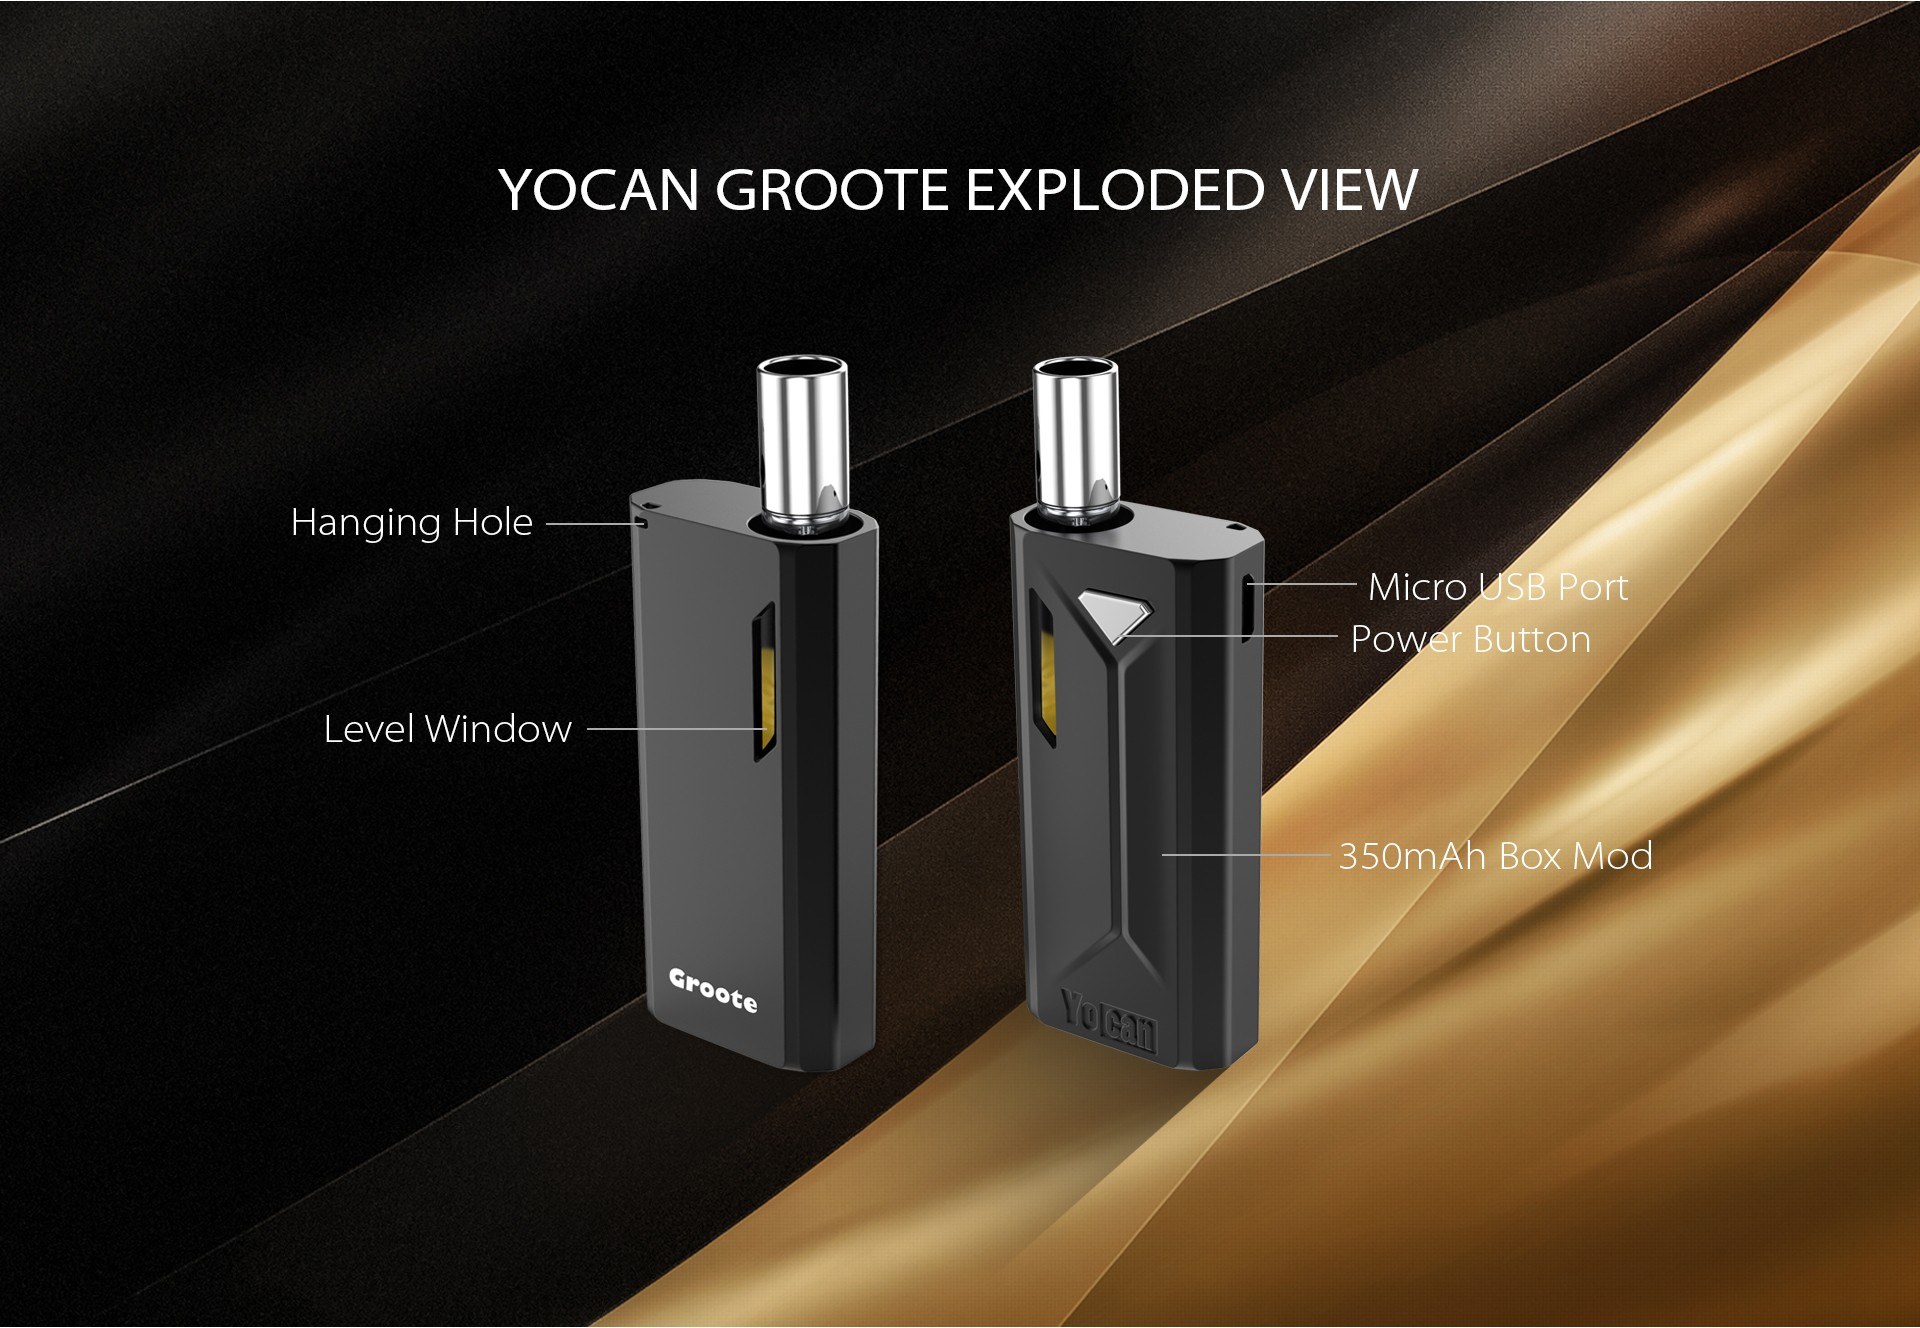 The Yocan Groote box mod exploded view.